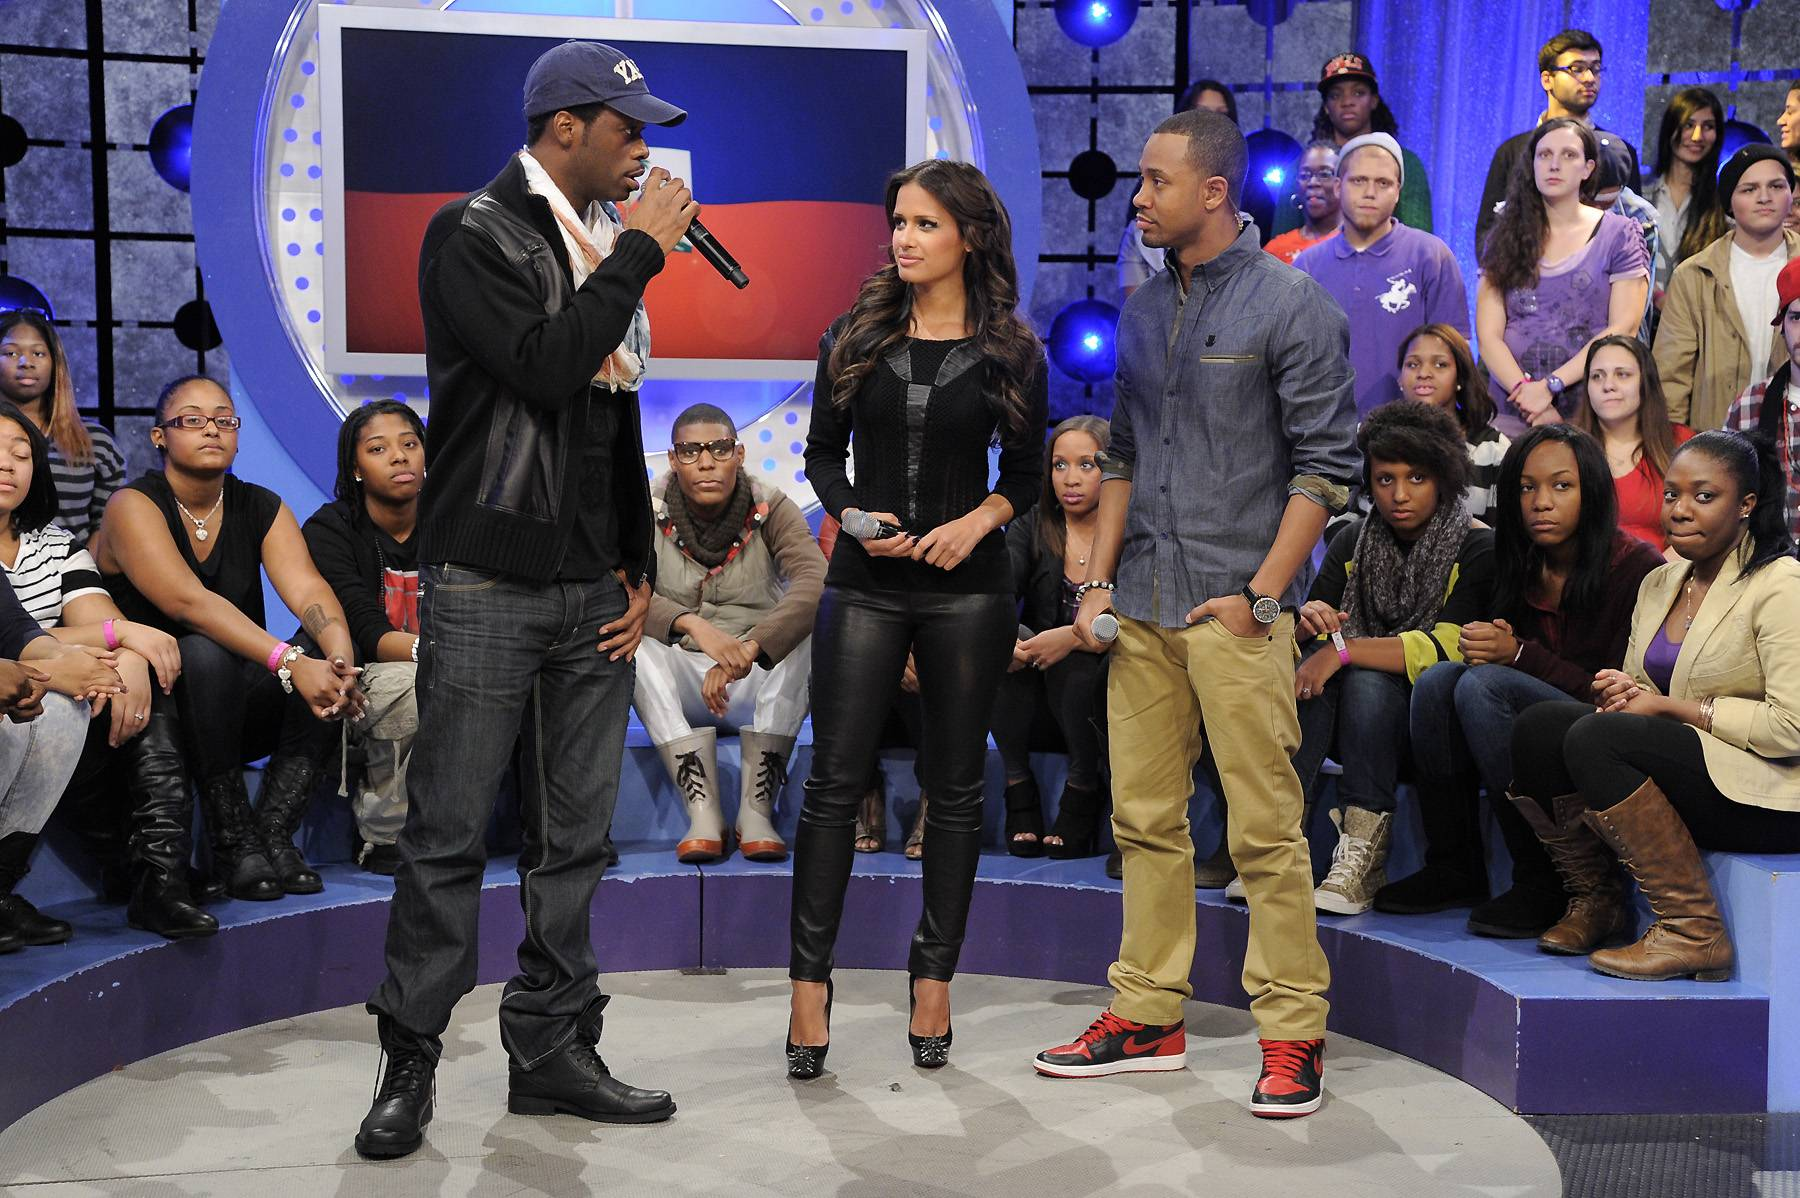 It's Gonna Be Hard - Pras discusses the recovery of Haiti with Rocsi Diaz and Terrence J at 106 & Park, January 12, 2012. (Photo: John Ricard / BET)